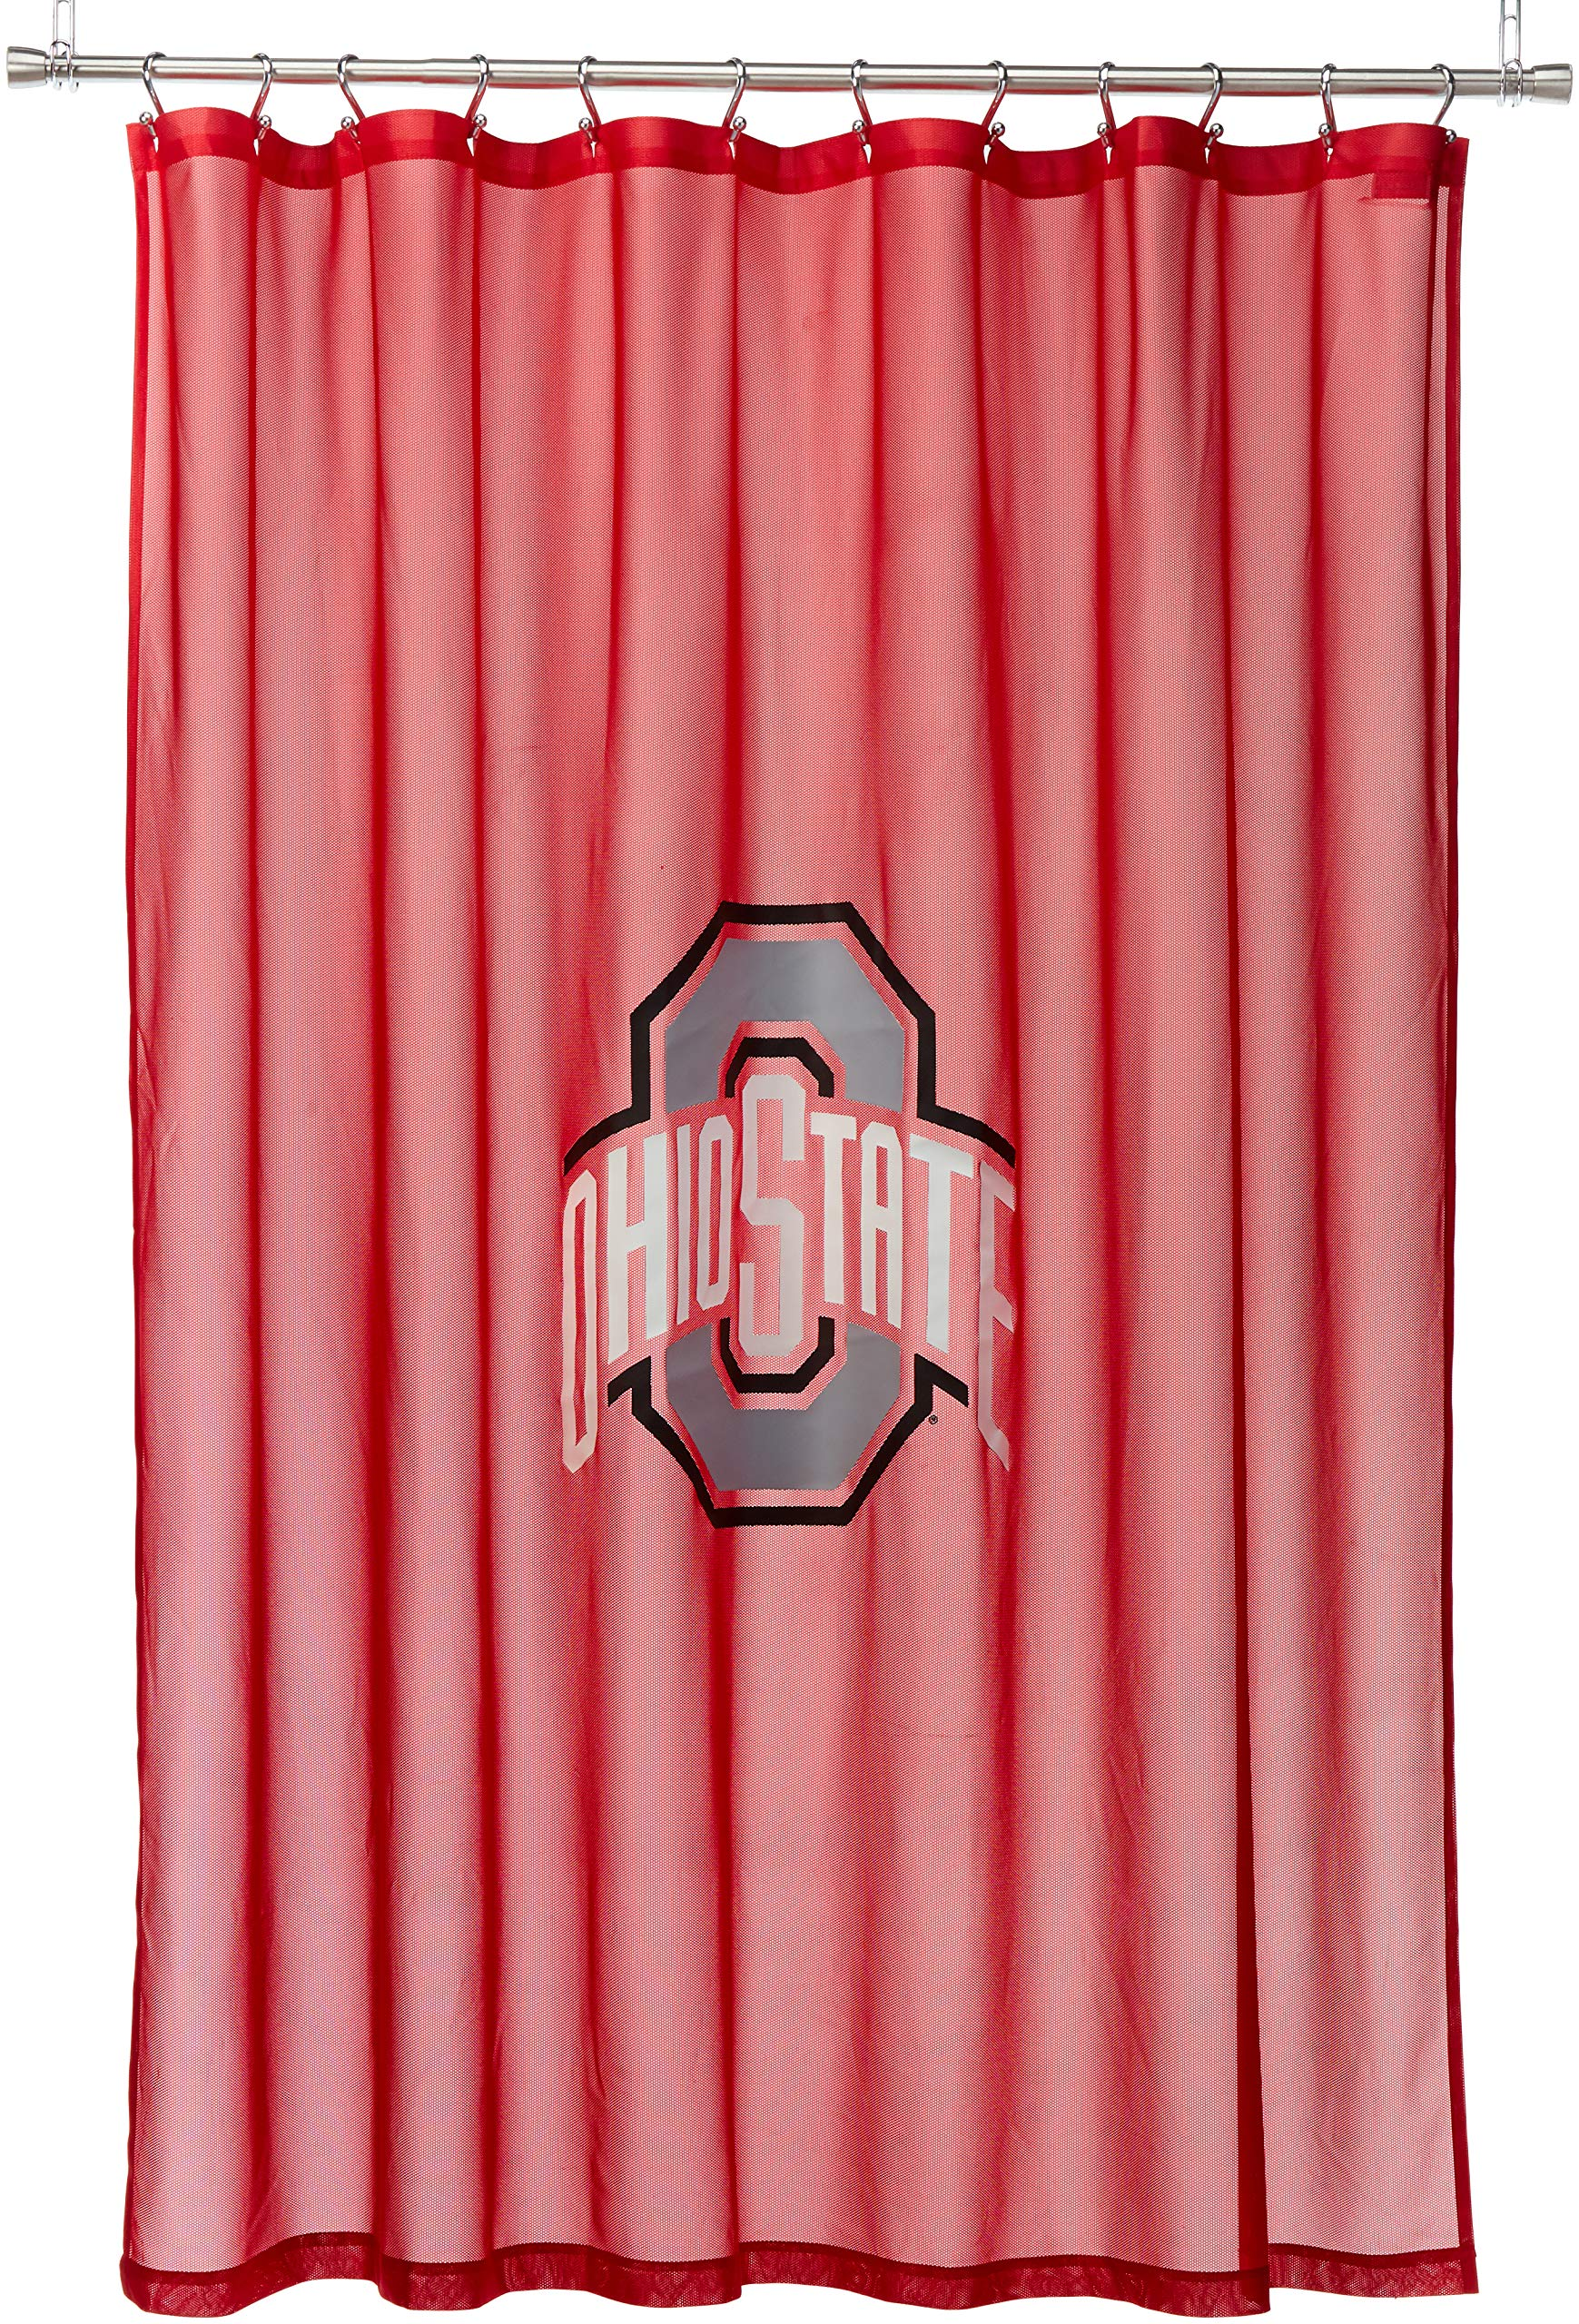 Ohio State Buckeyes Shower Curtain by Sports Coverage